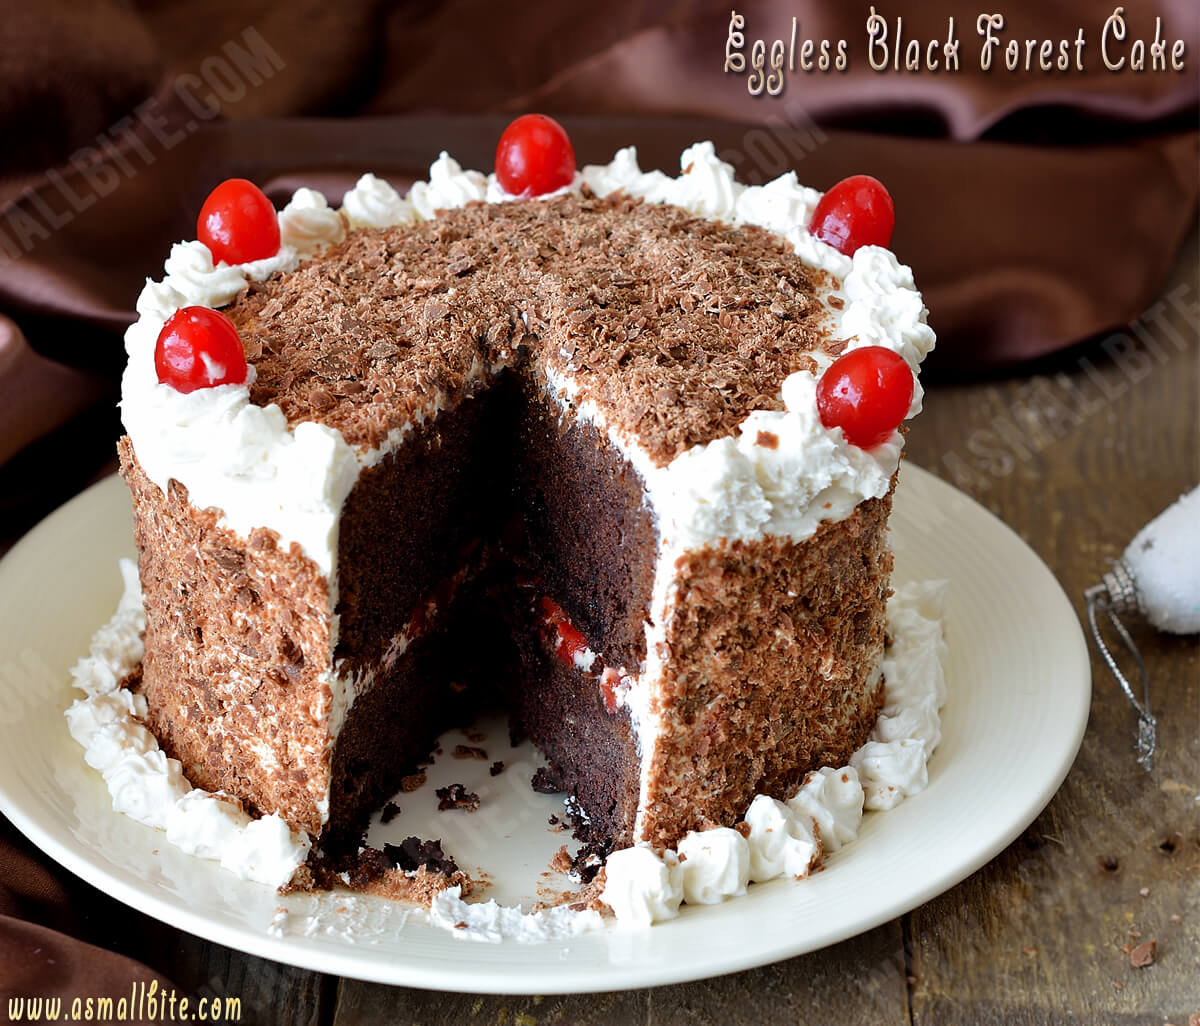 Eggless Black Forest Cake Recipe 2